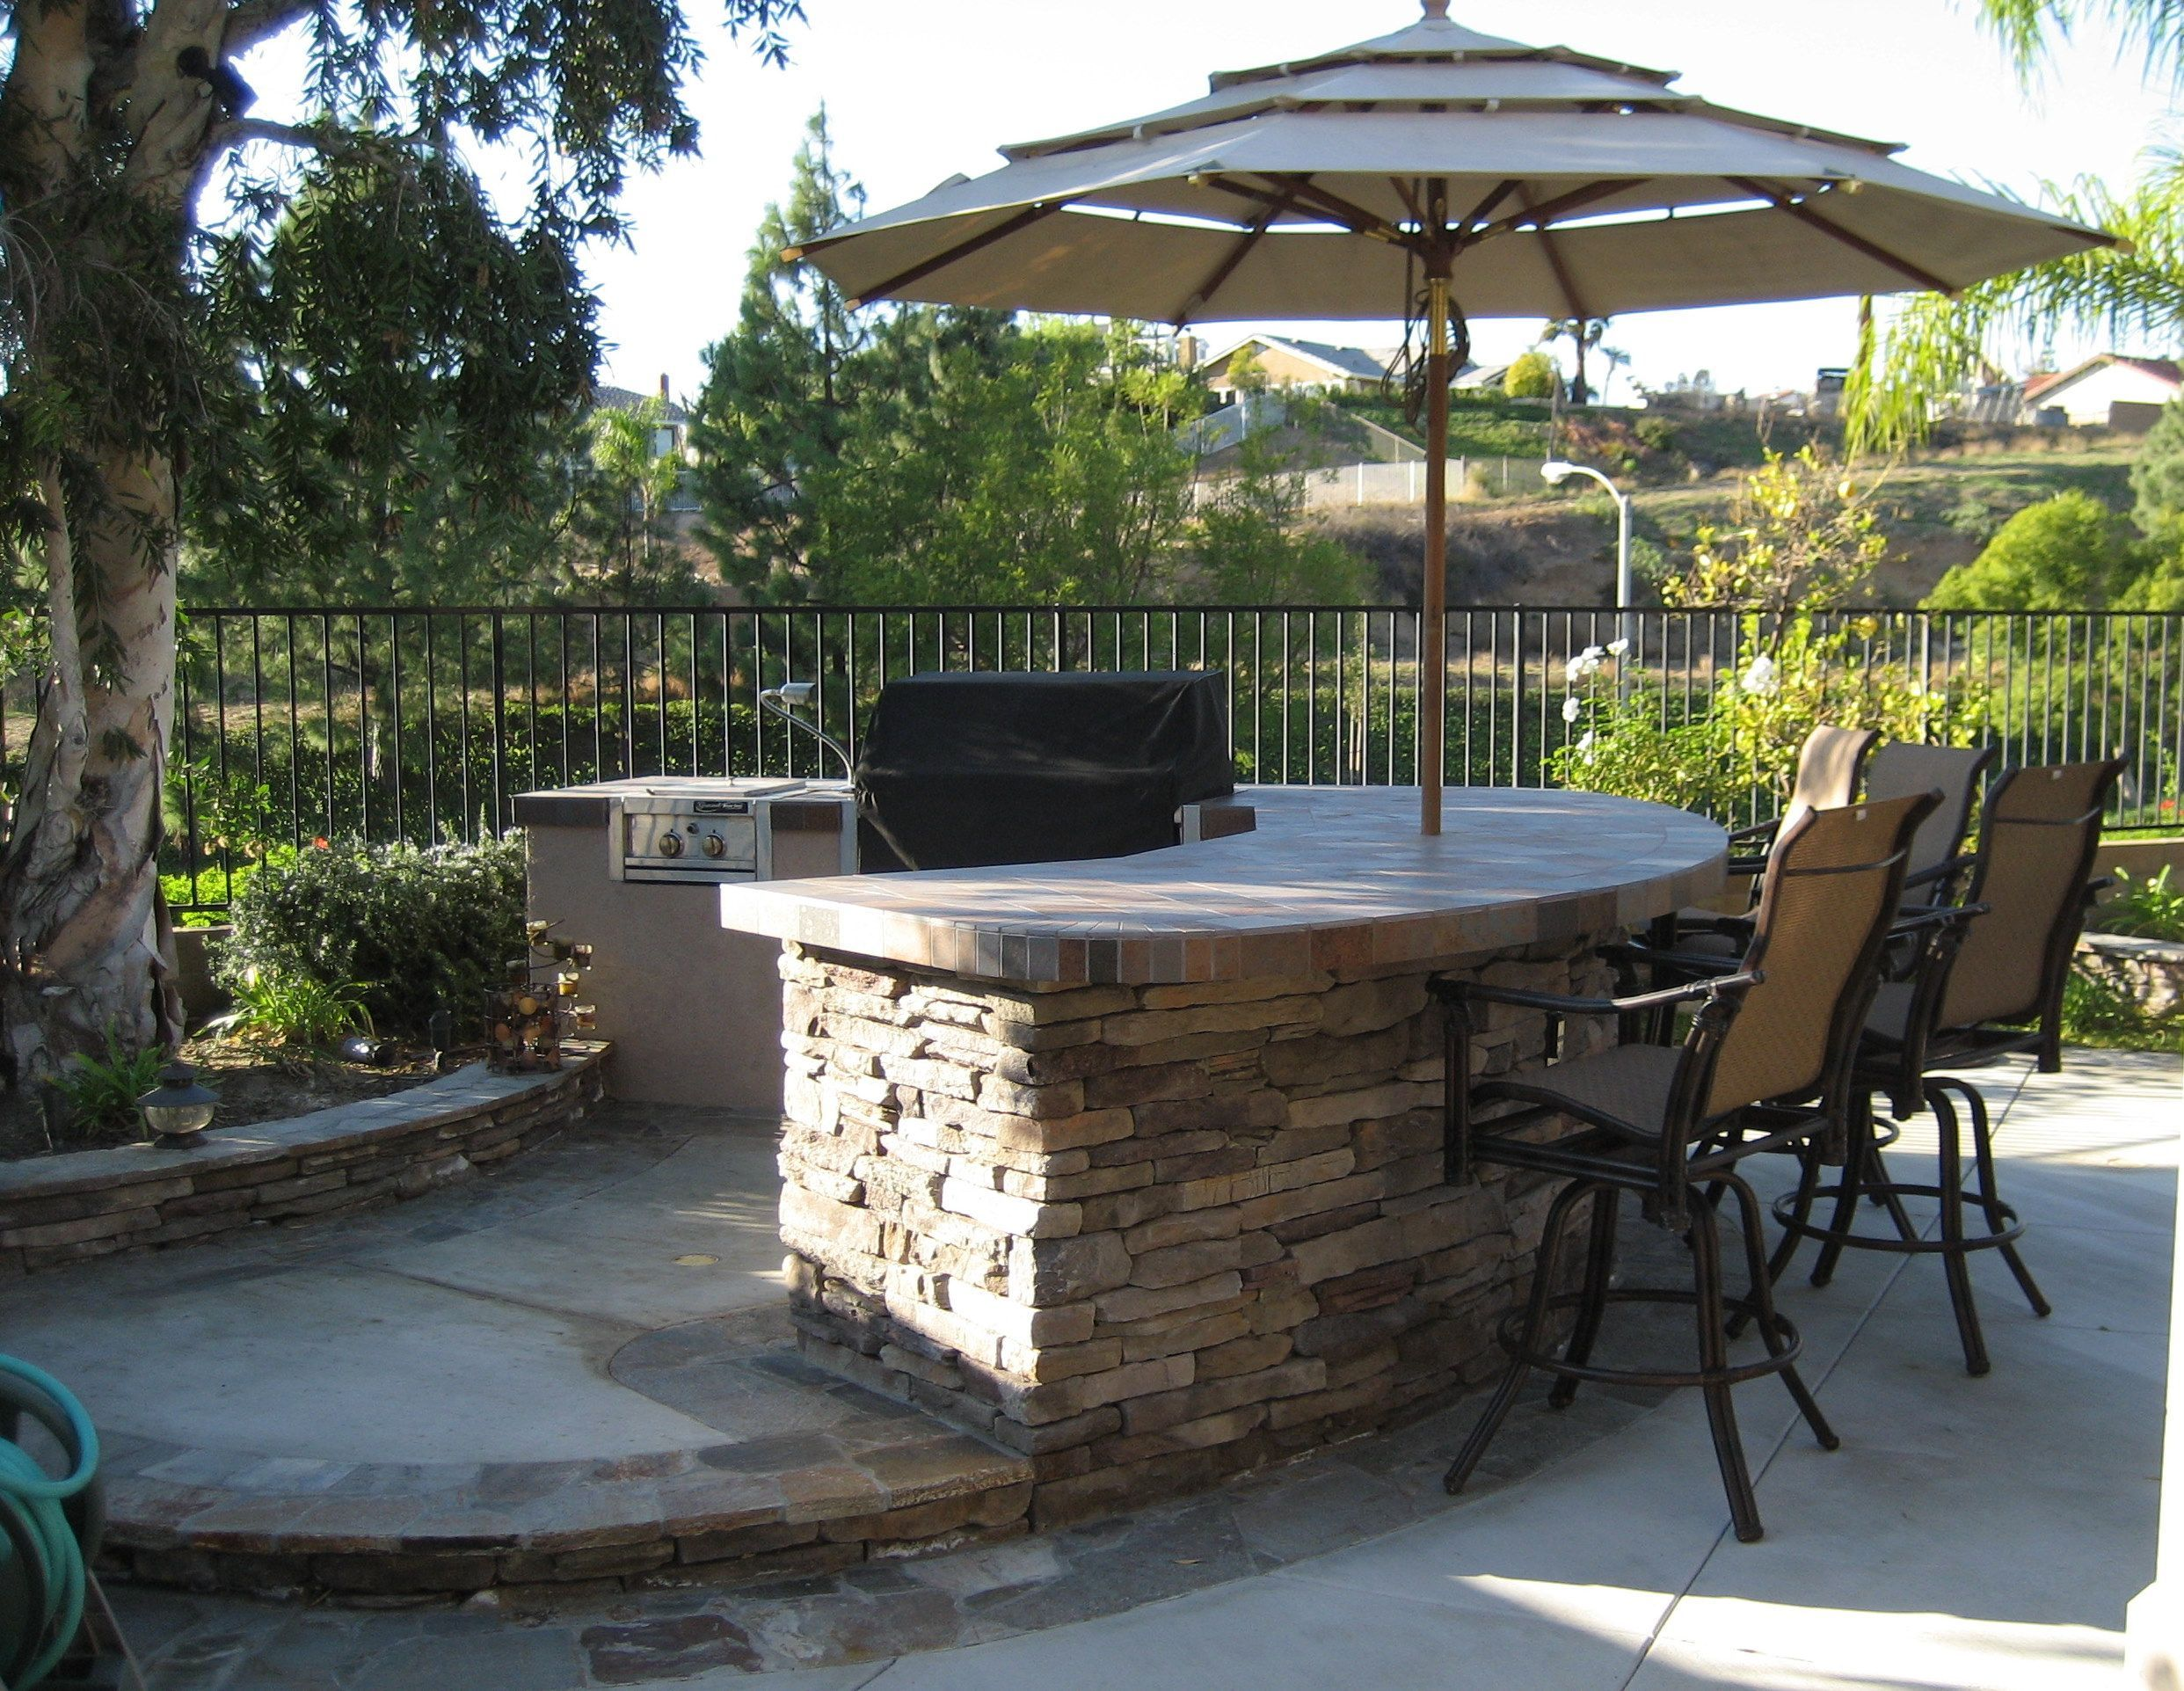 49+ Grill landscaping ideas information